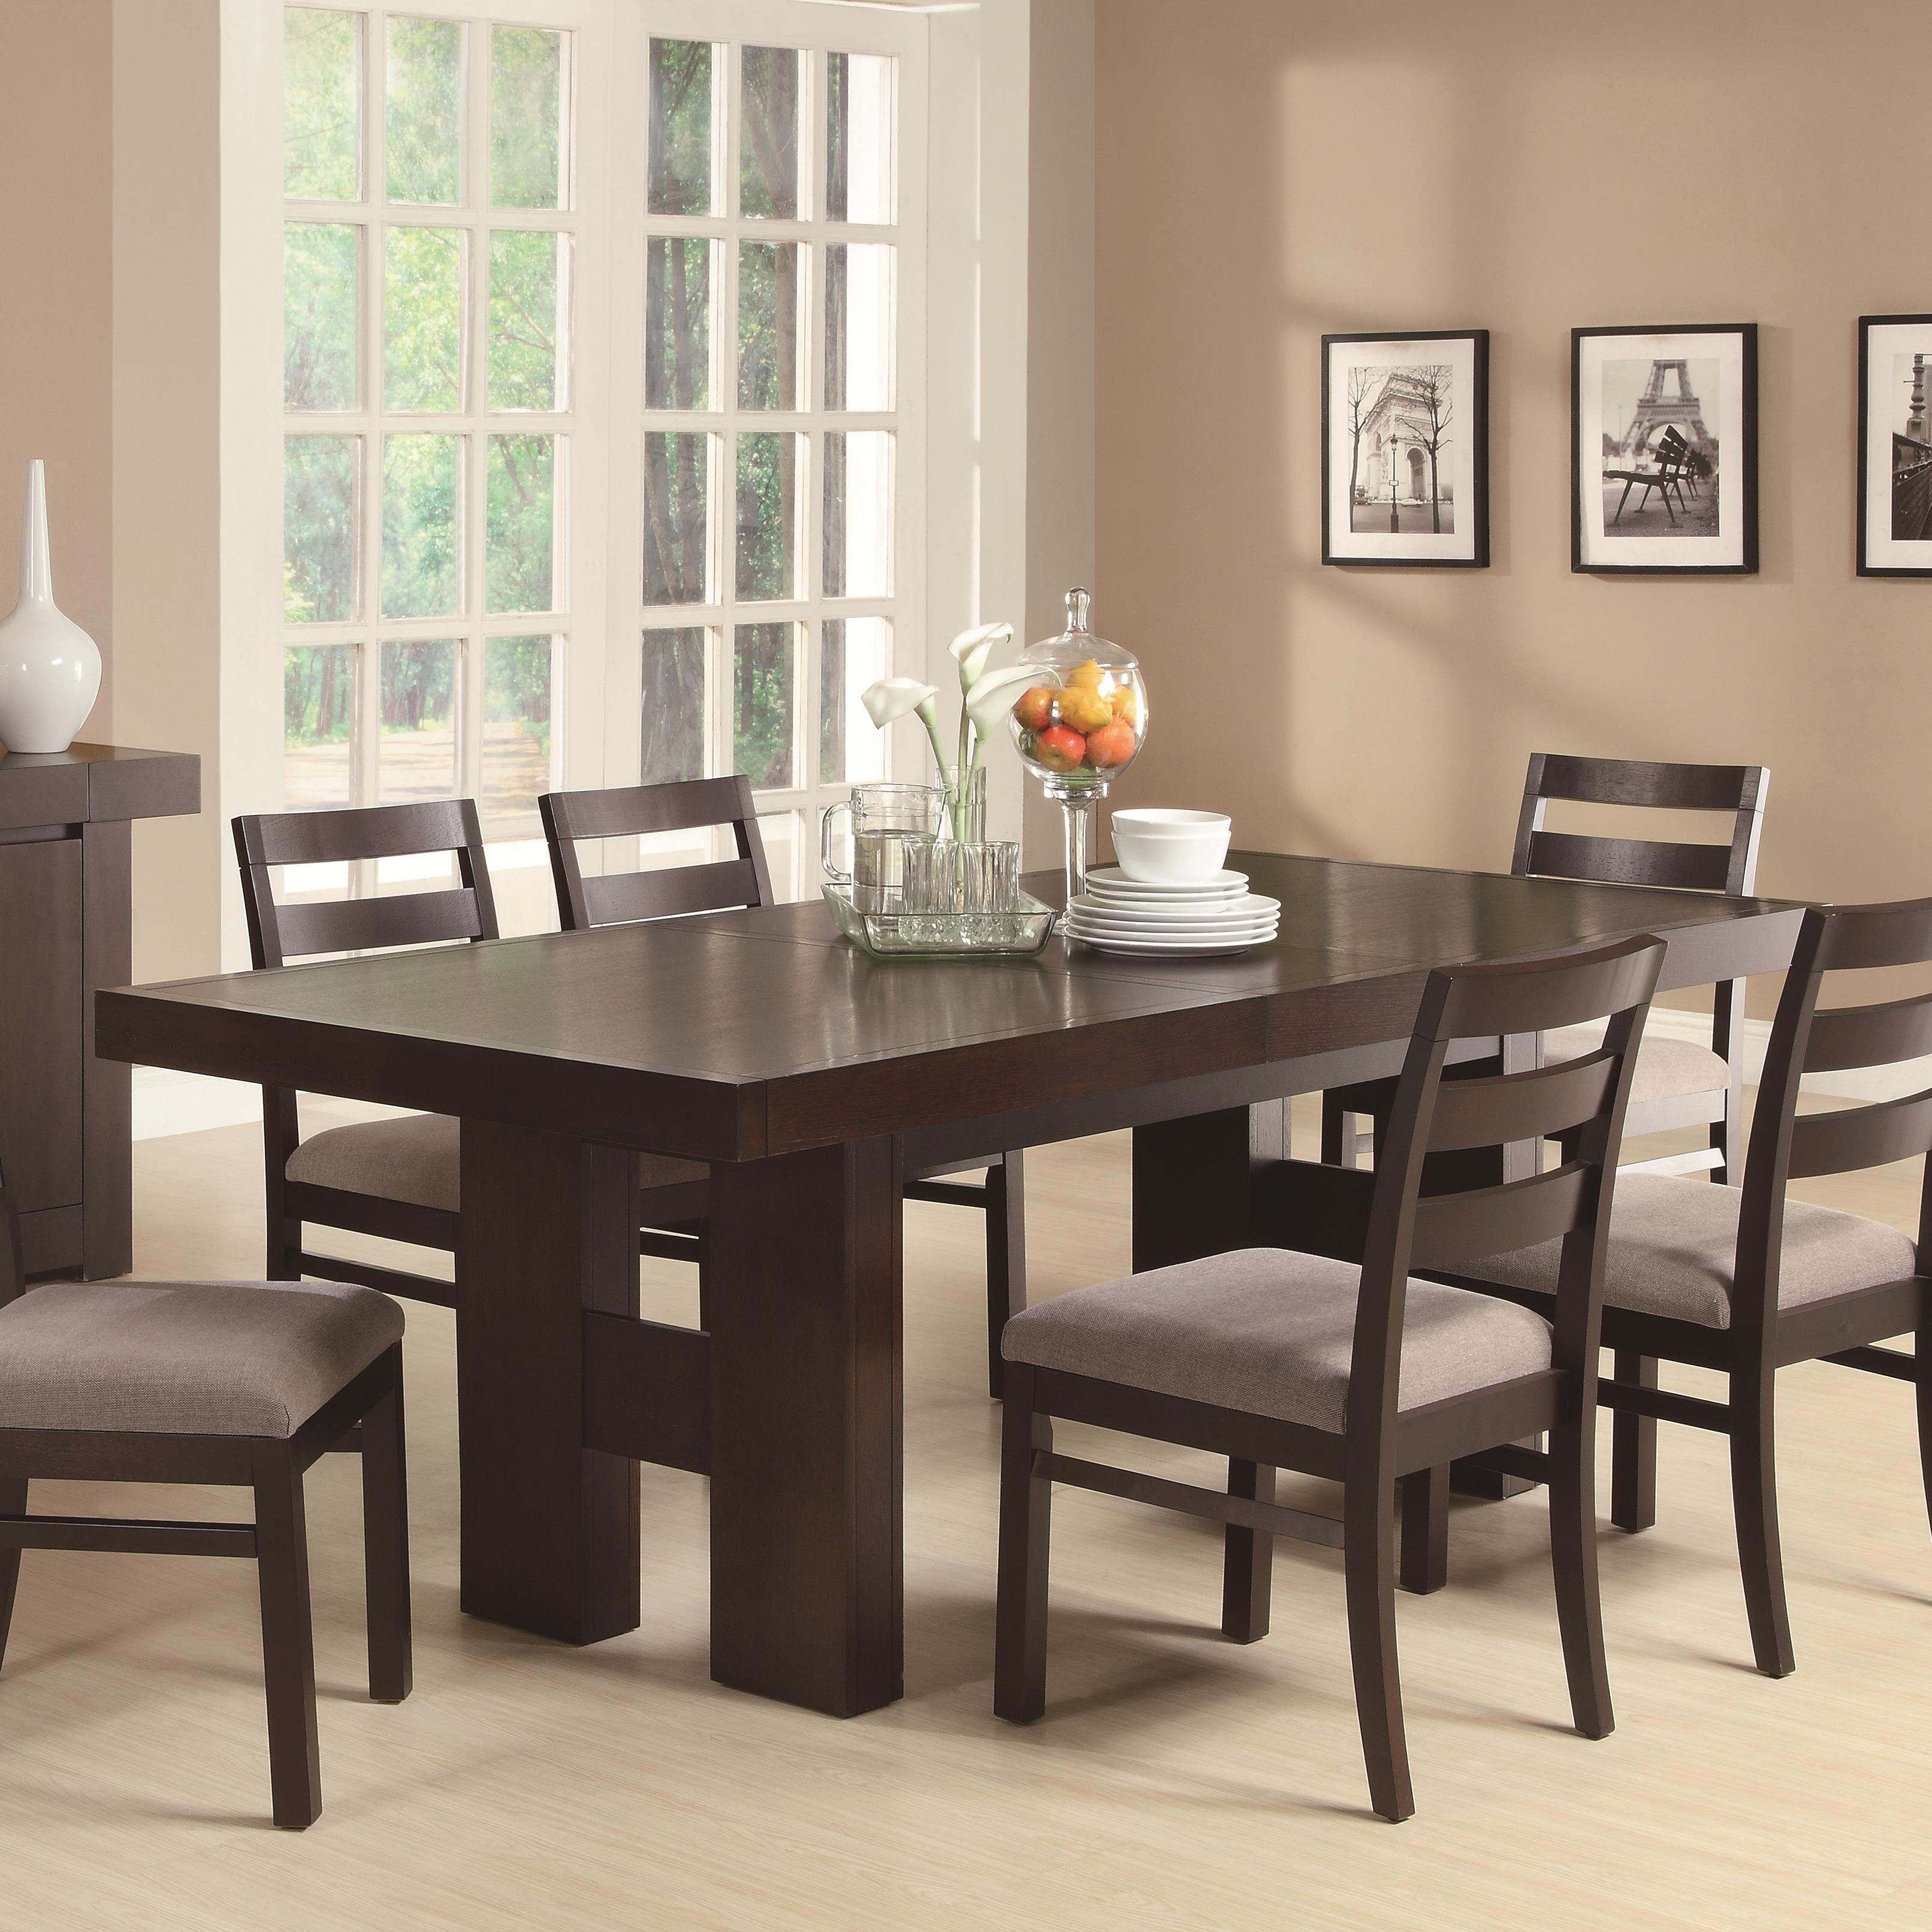 Coaster Furniture Dabny Dining Table Click To Enlarge ...